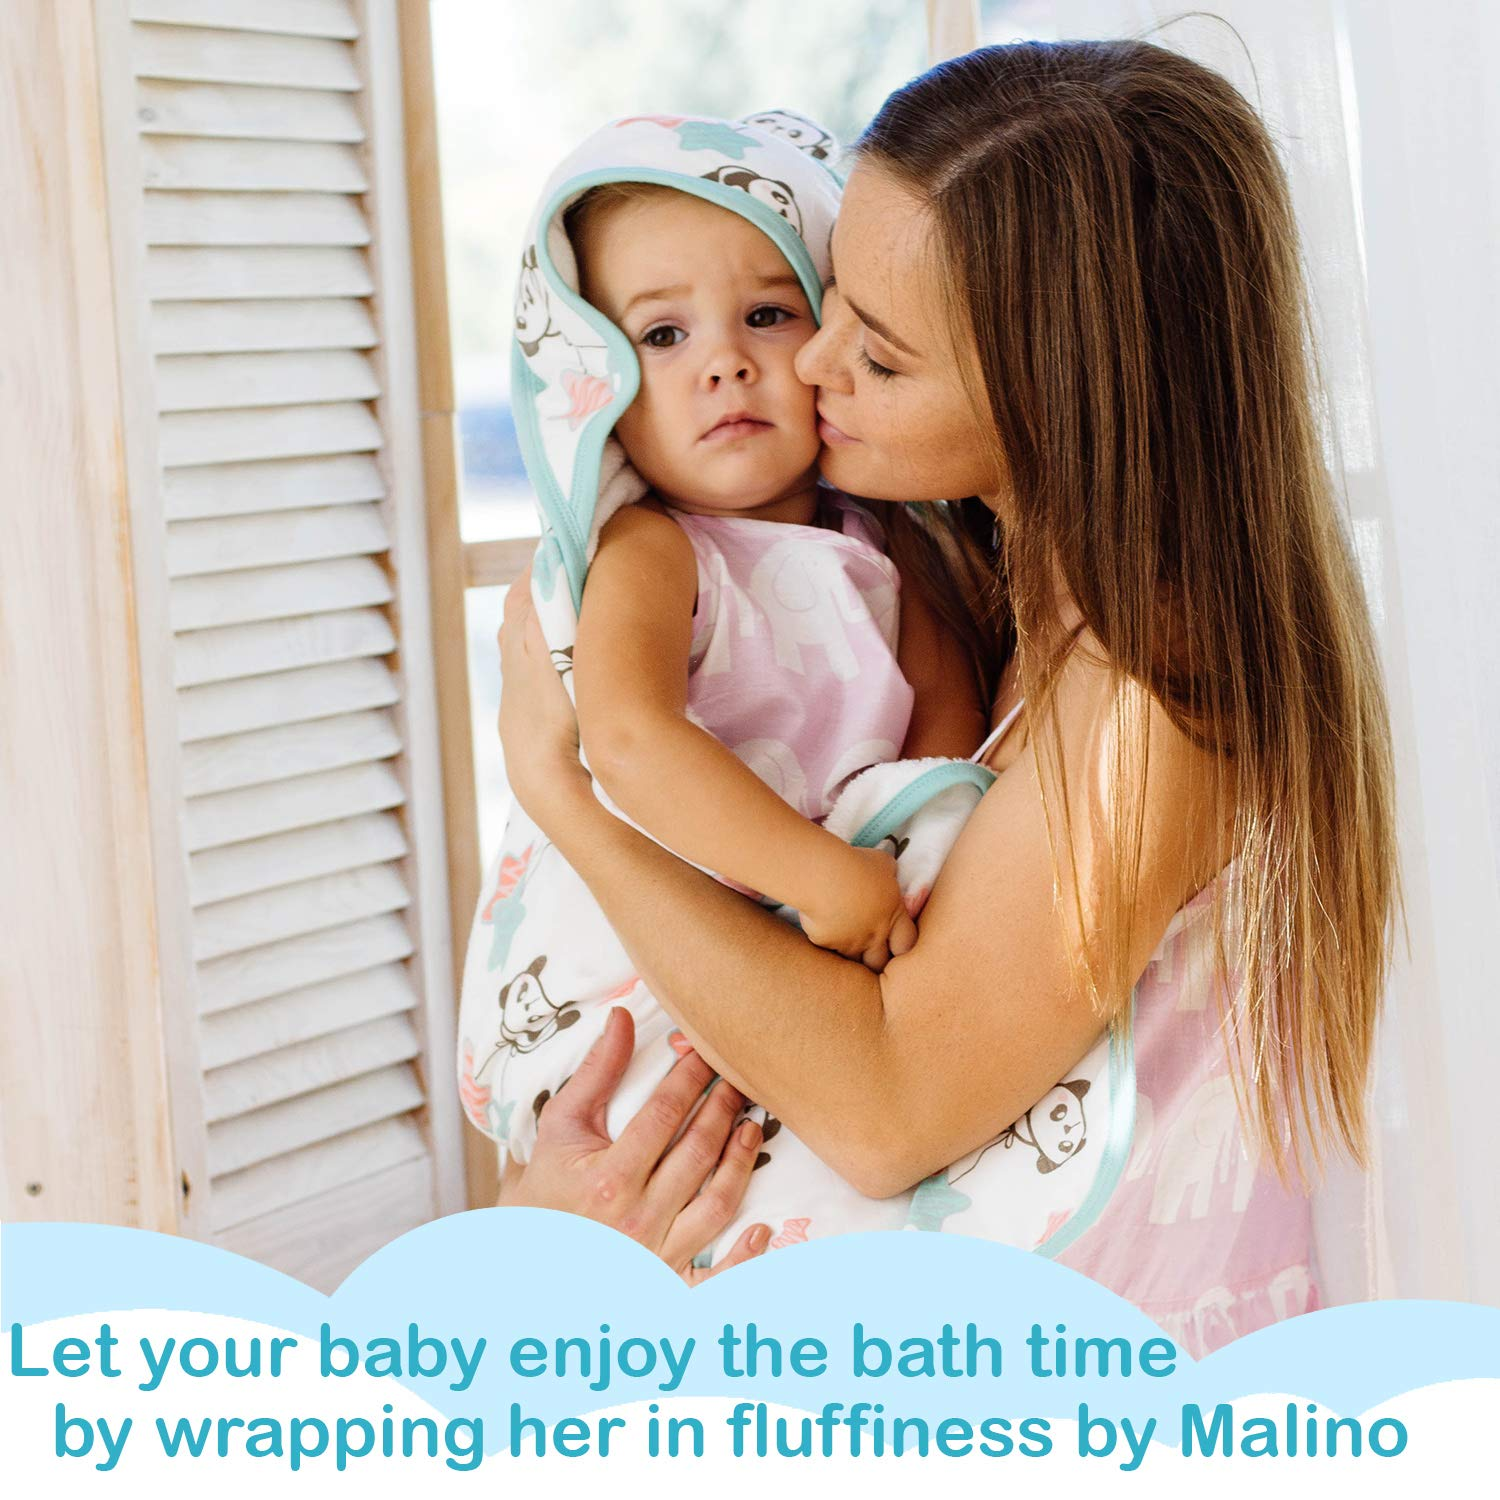 Unisex 35x35-Inch for Newborns Infants Toddlers Malino Organic Bamboo Muslin Premium Baby Hooded Bath Towel Double Sided Perfect Baby Shower Set Highly Absorbent Breathable and Hypoallergenic